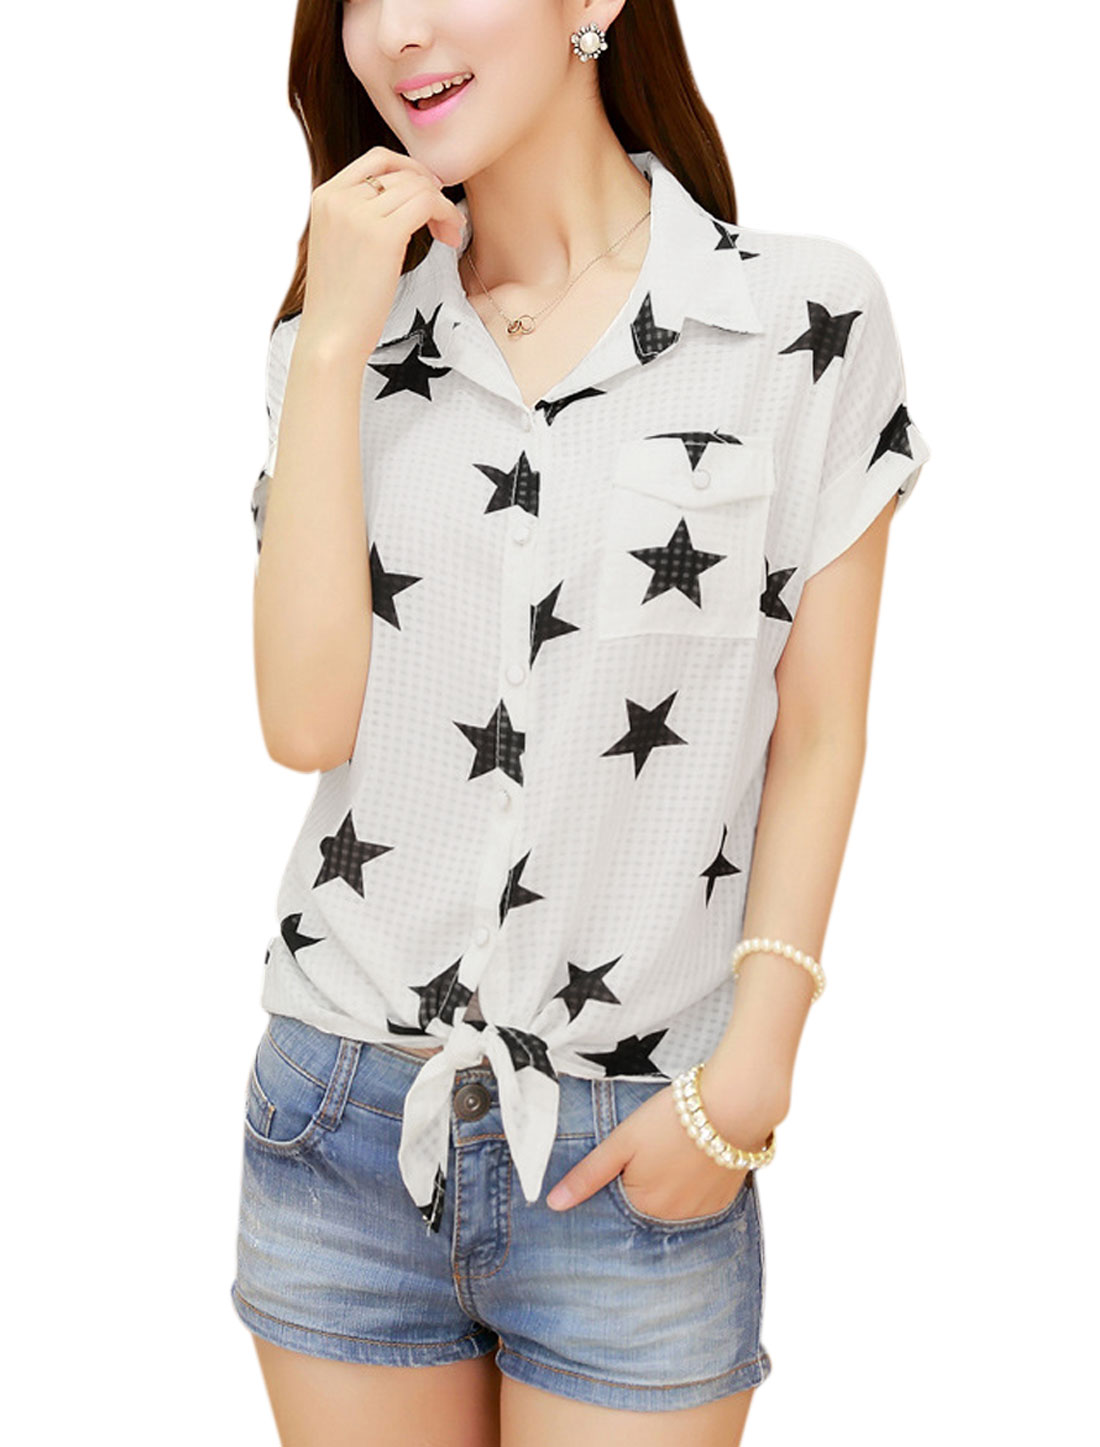 Lady's Short Sleeve Single Breasted Stars Pattern Tie Hem Chiffon Blouse White M